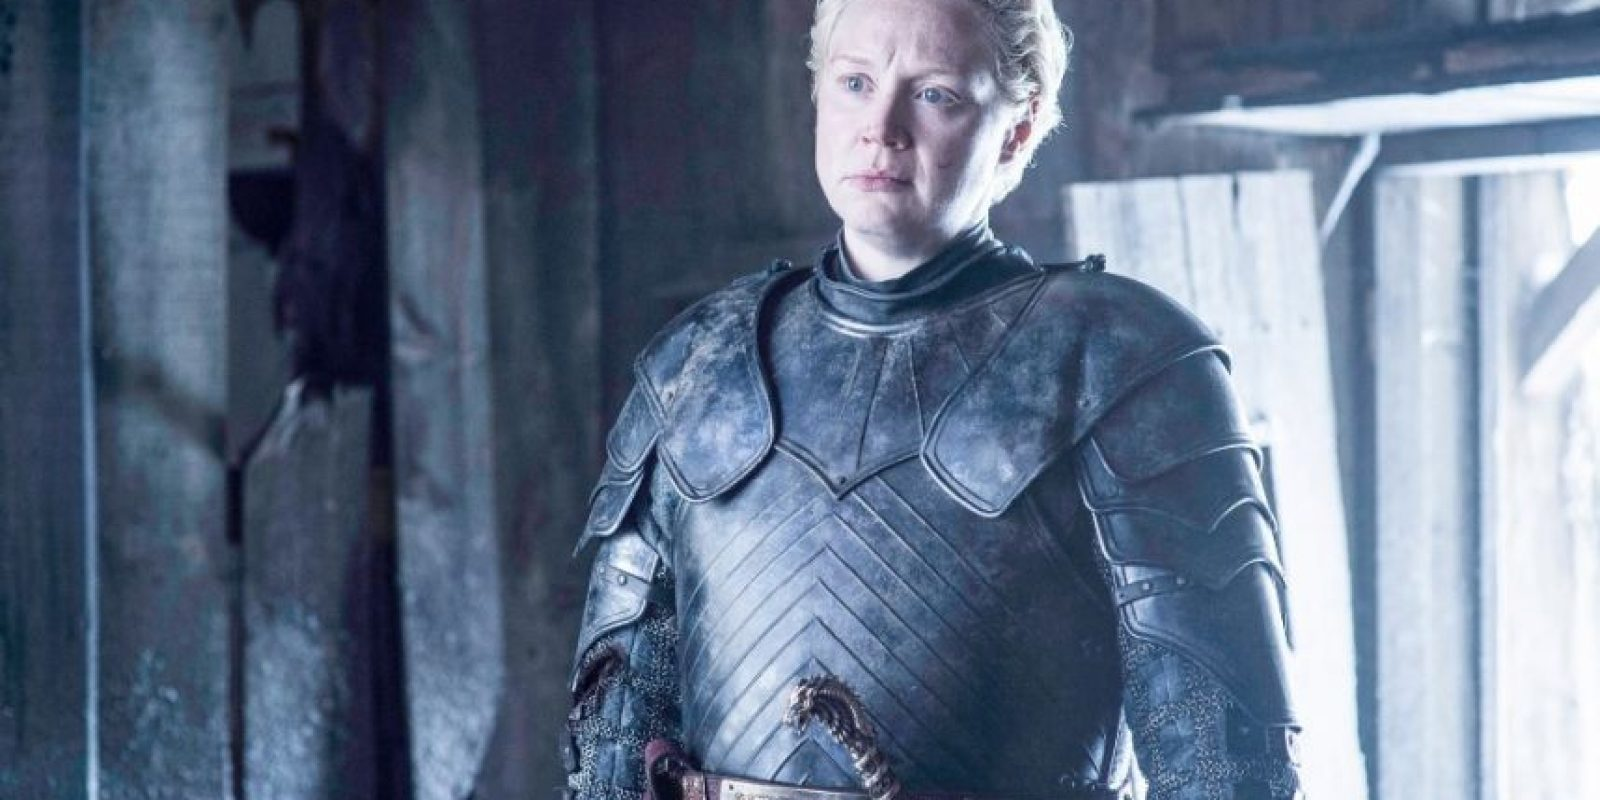 ¿Qué hará esta vez Brienne de Tarth? Foto: Vía Facebook/Game of Thrones